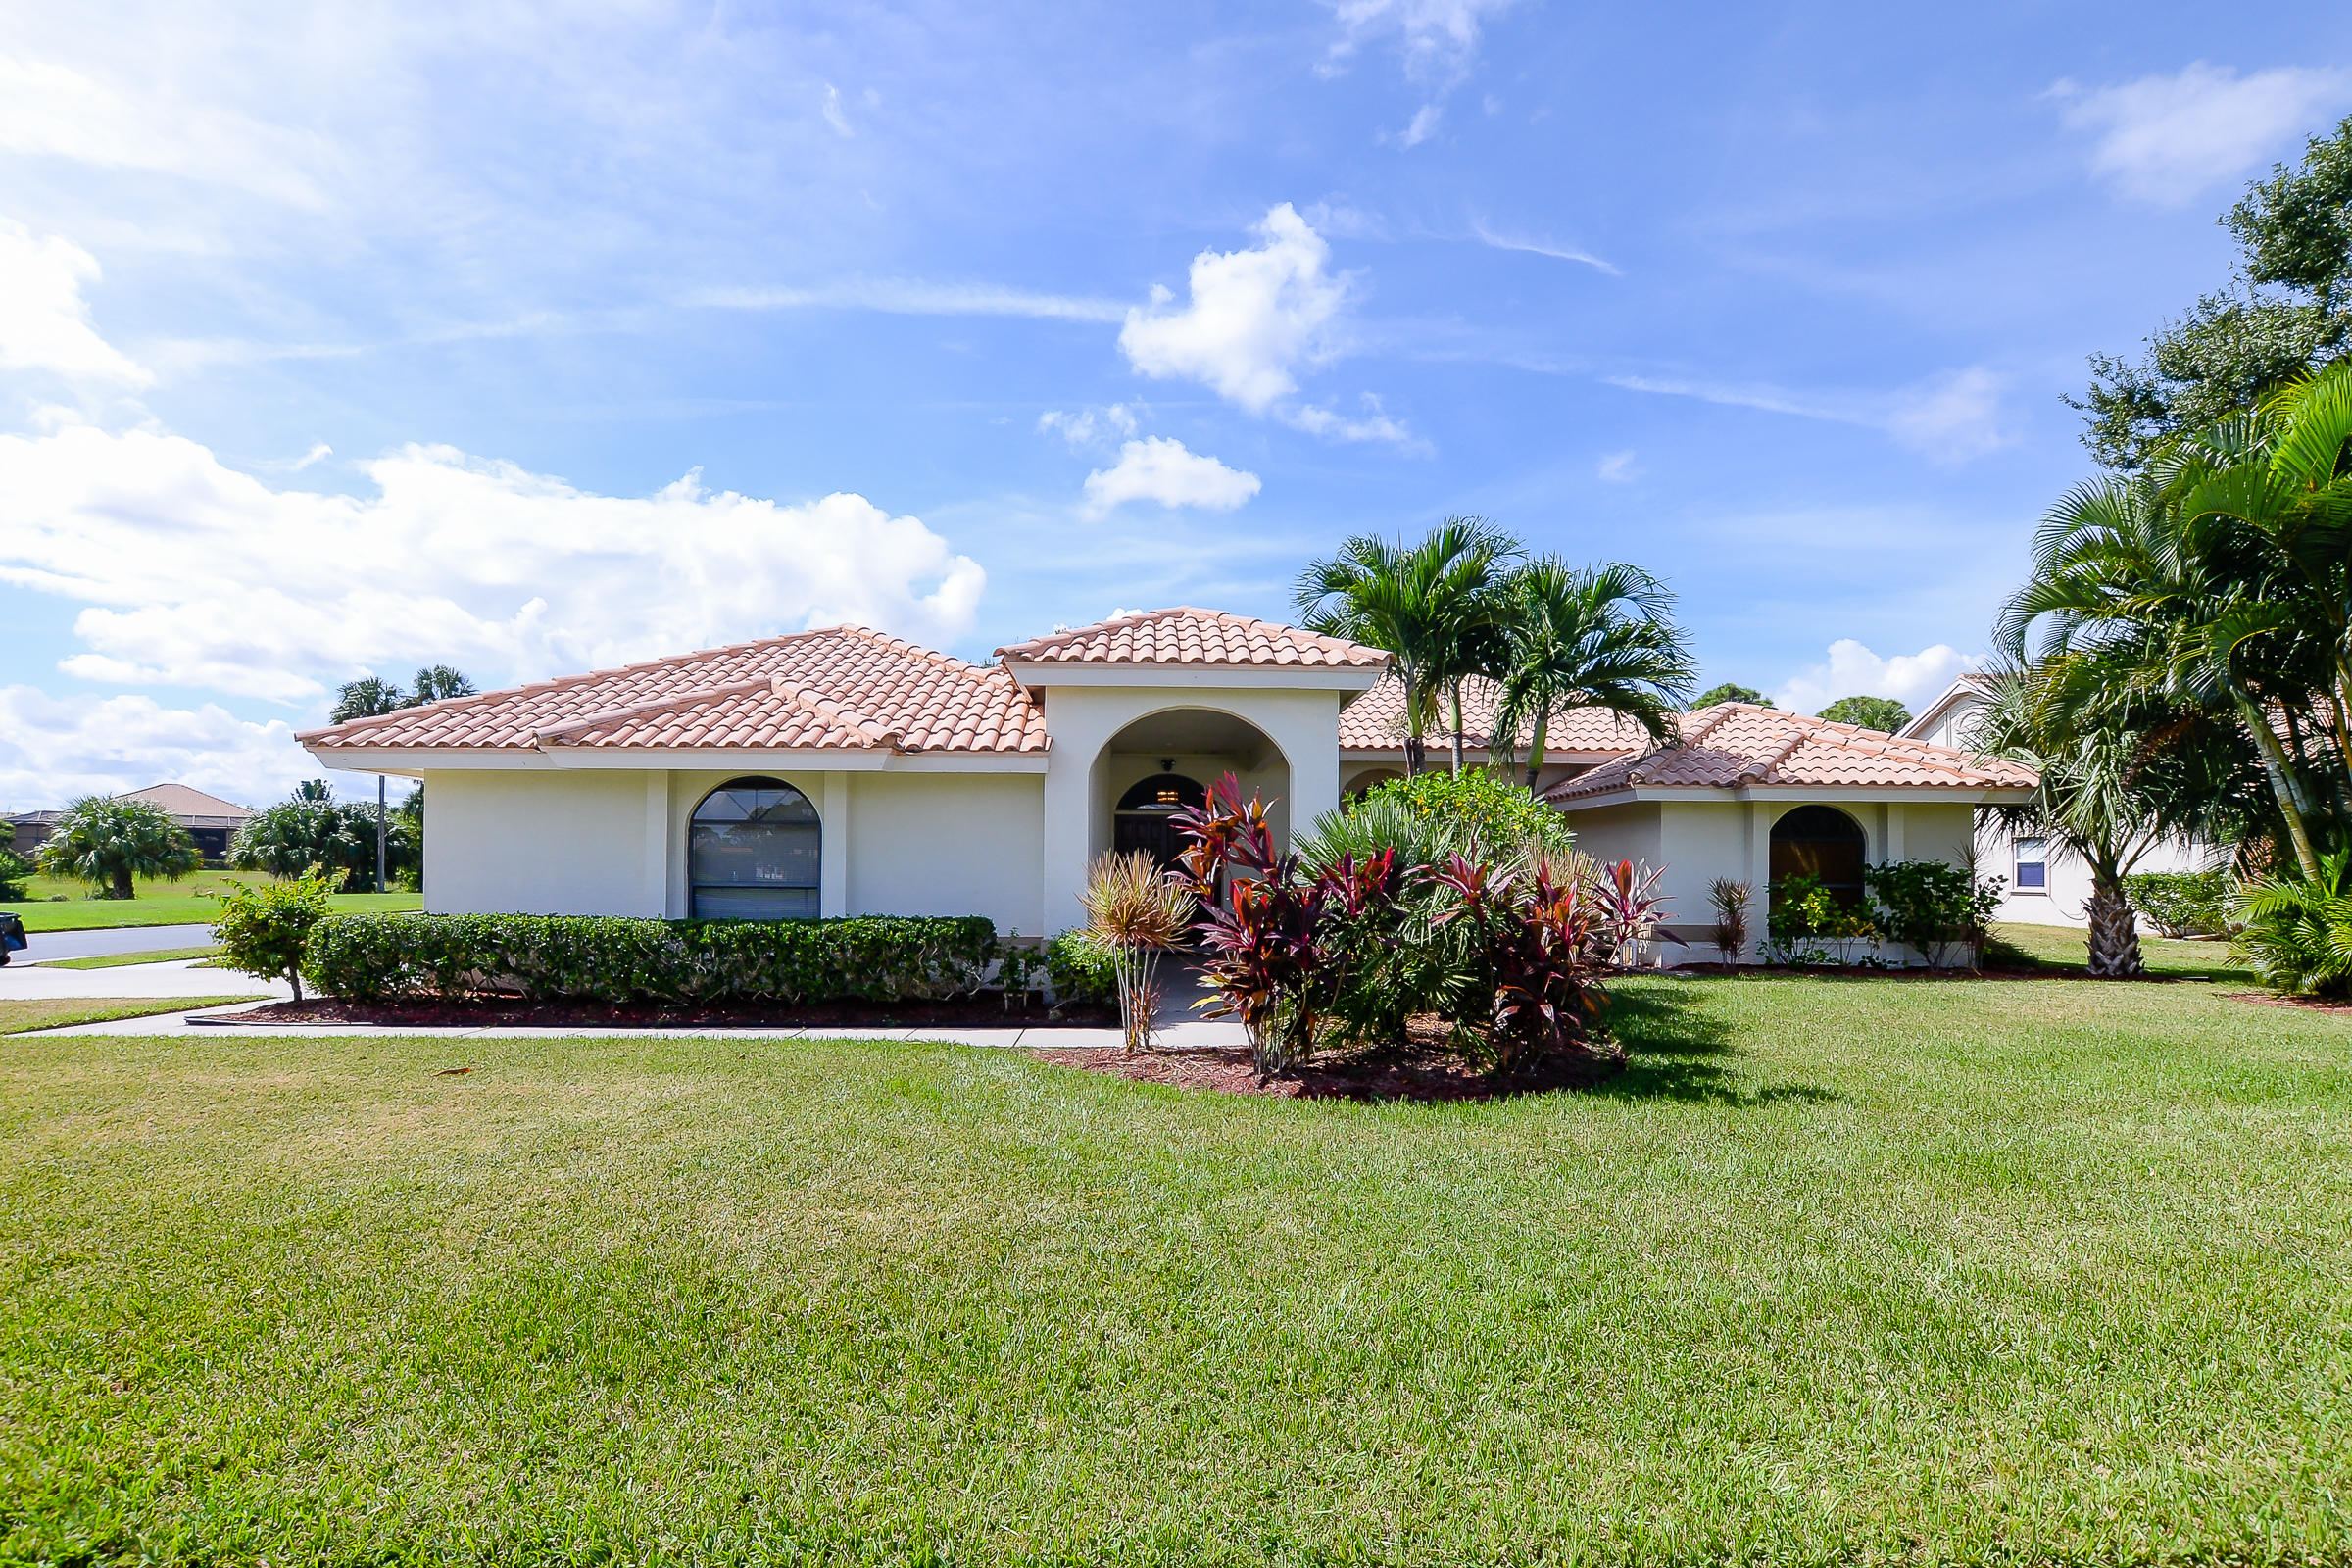 410 Sycamore Cove, Port Saint Lucie, Florida 34986, 3 Bedrooms Bedrooms, ,2 BathroomsBathrooms,Single Family,For Sale,Sycamore,RX-10475811